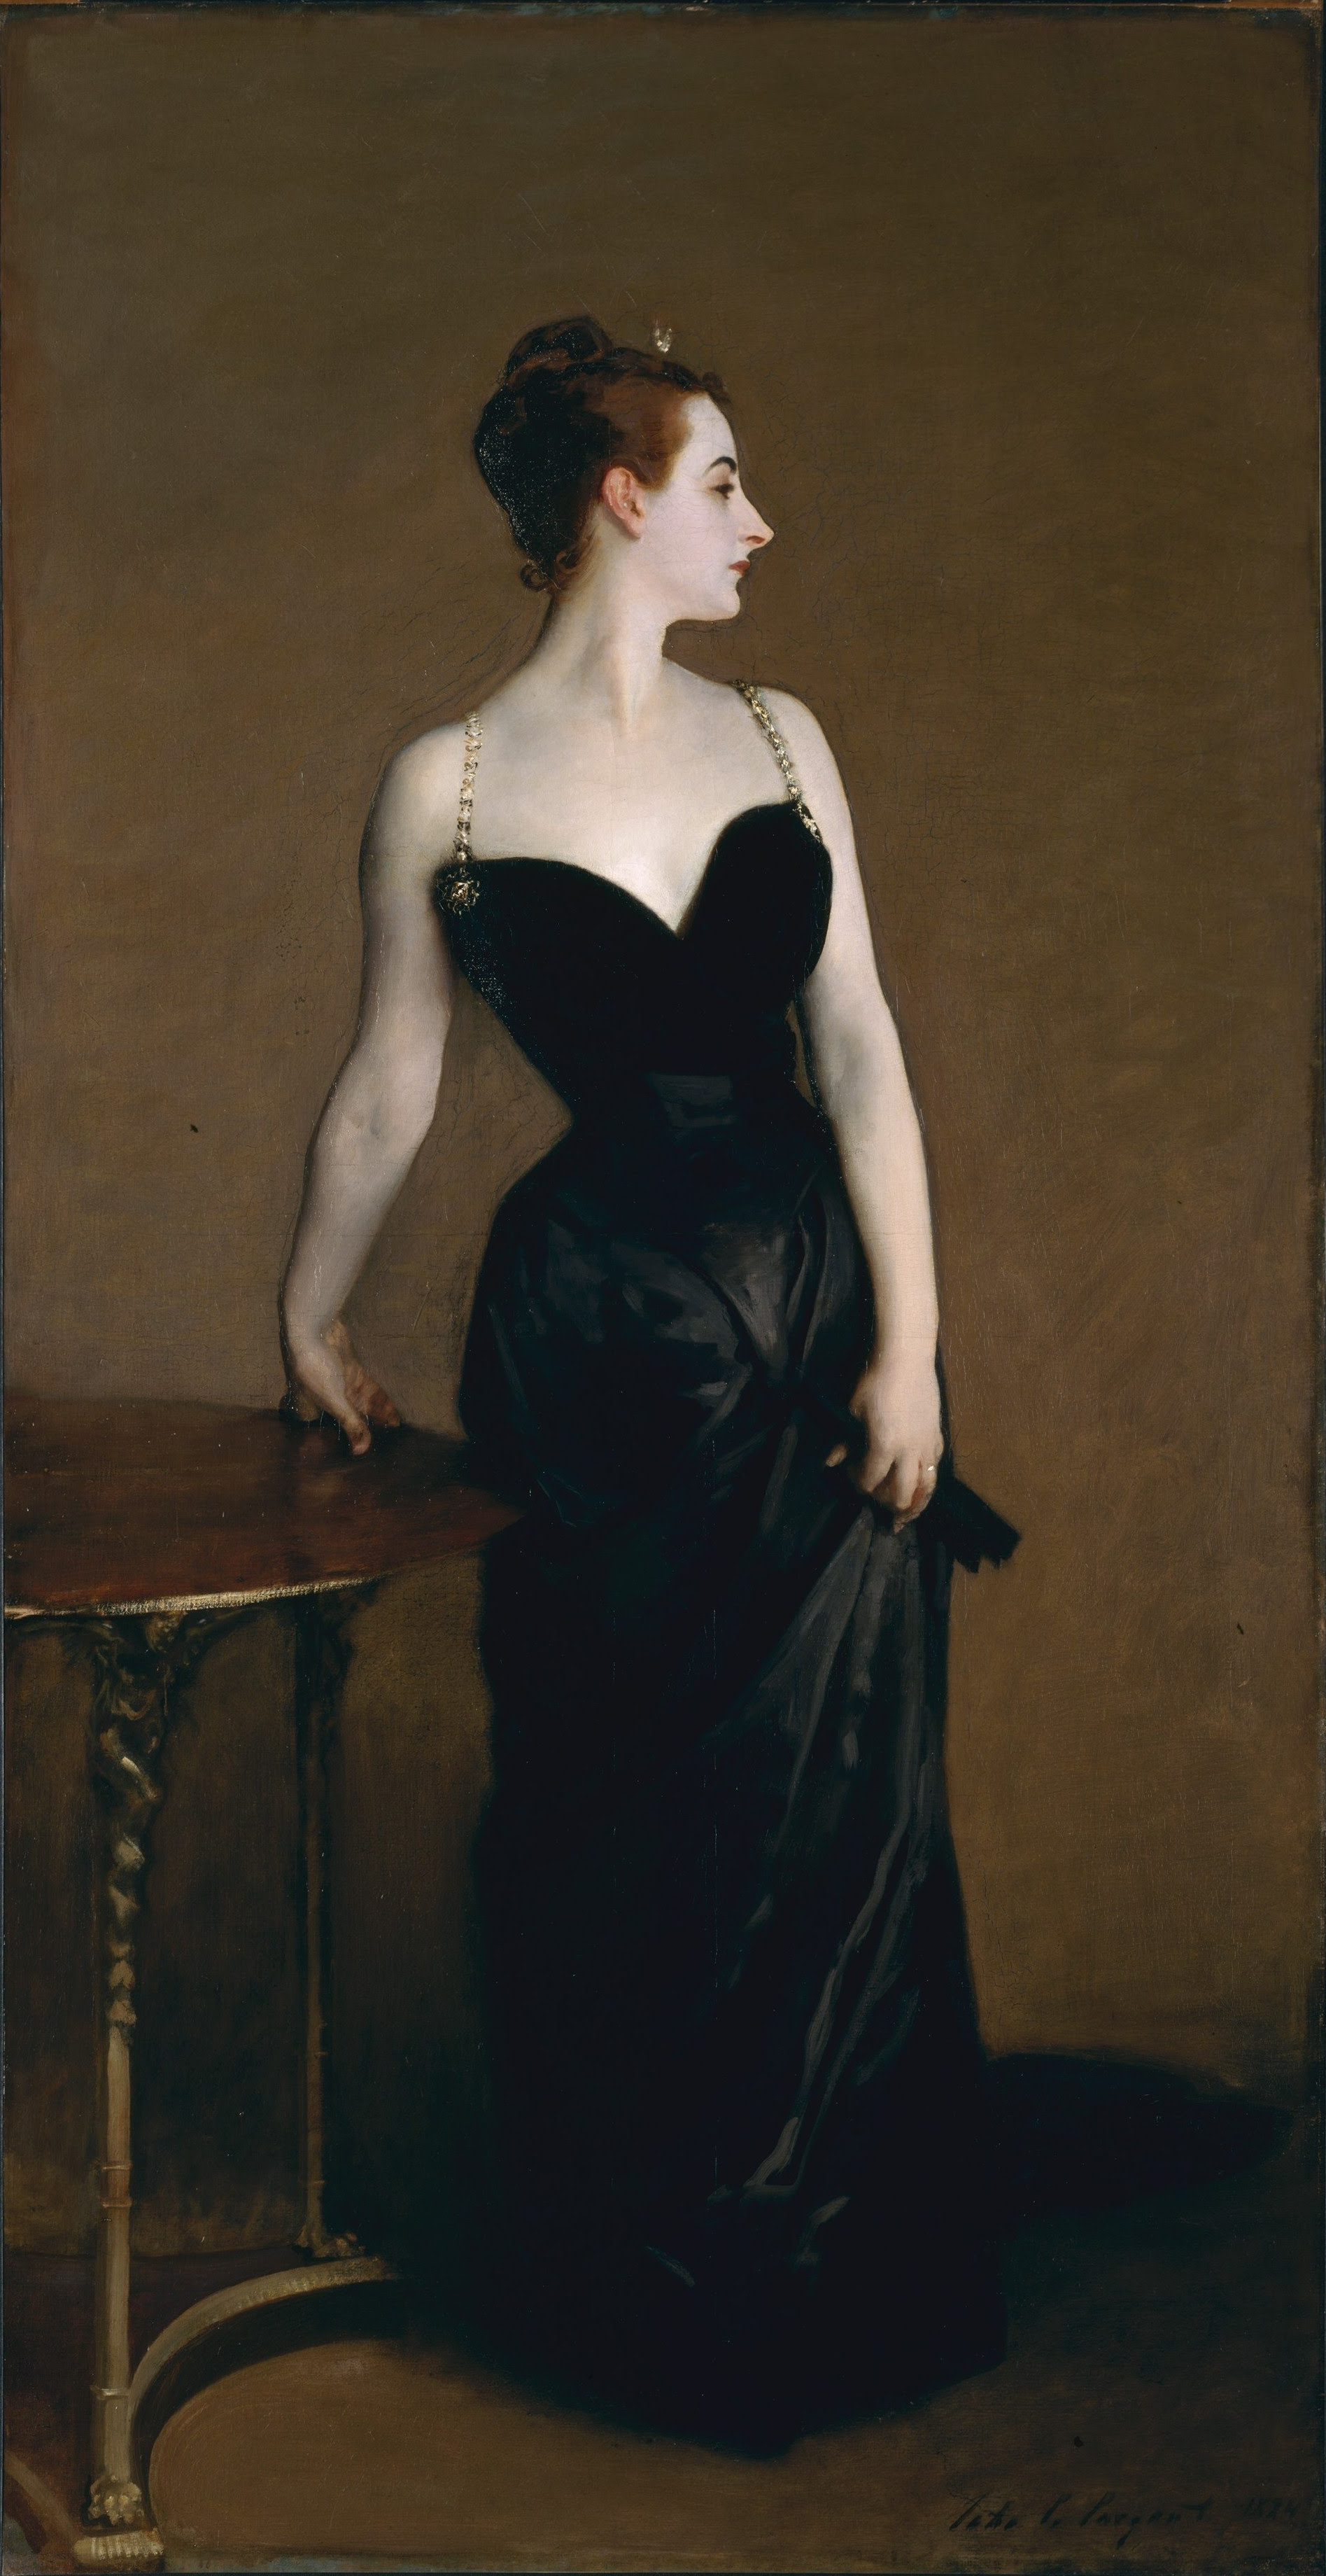 https://i0.wp.com/upload.wikimedia.org/wikipedia/commons/a/a4/Madame_X_%28Madame_Pierre_Gautreau%29%2C_John_Singer_Sargent%2C_1884_%28unfree_frame_crop%29.jpg